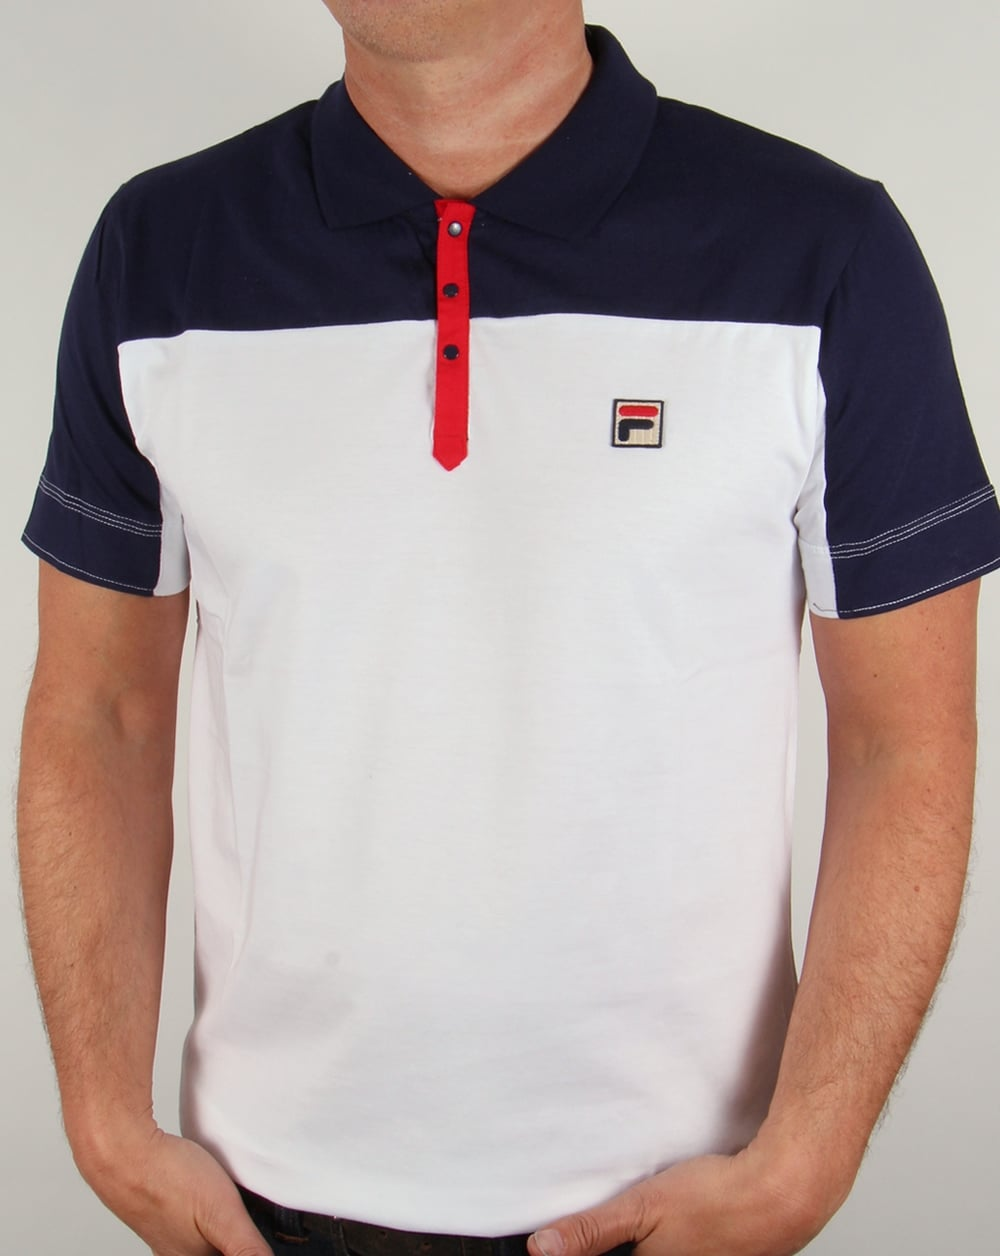 Fila Vintage Corsair Polo Shirt White/Navy/Red